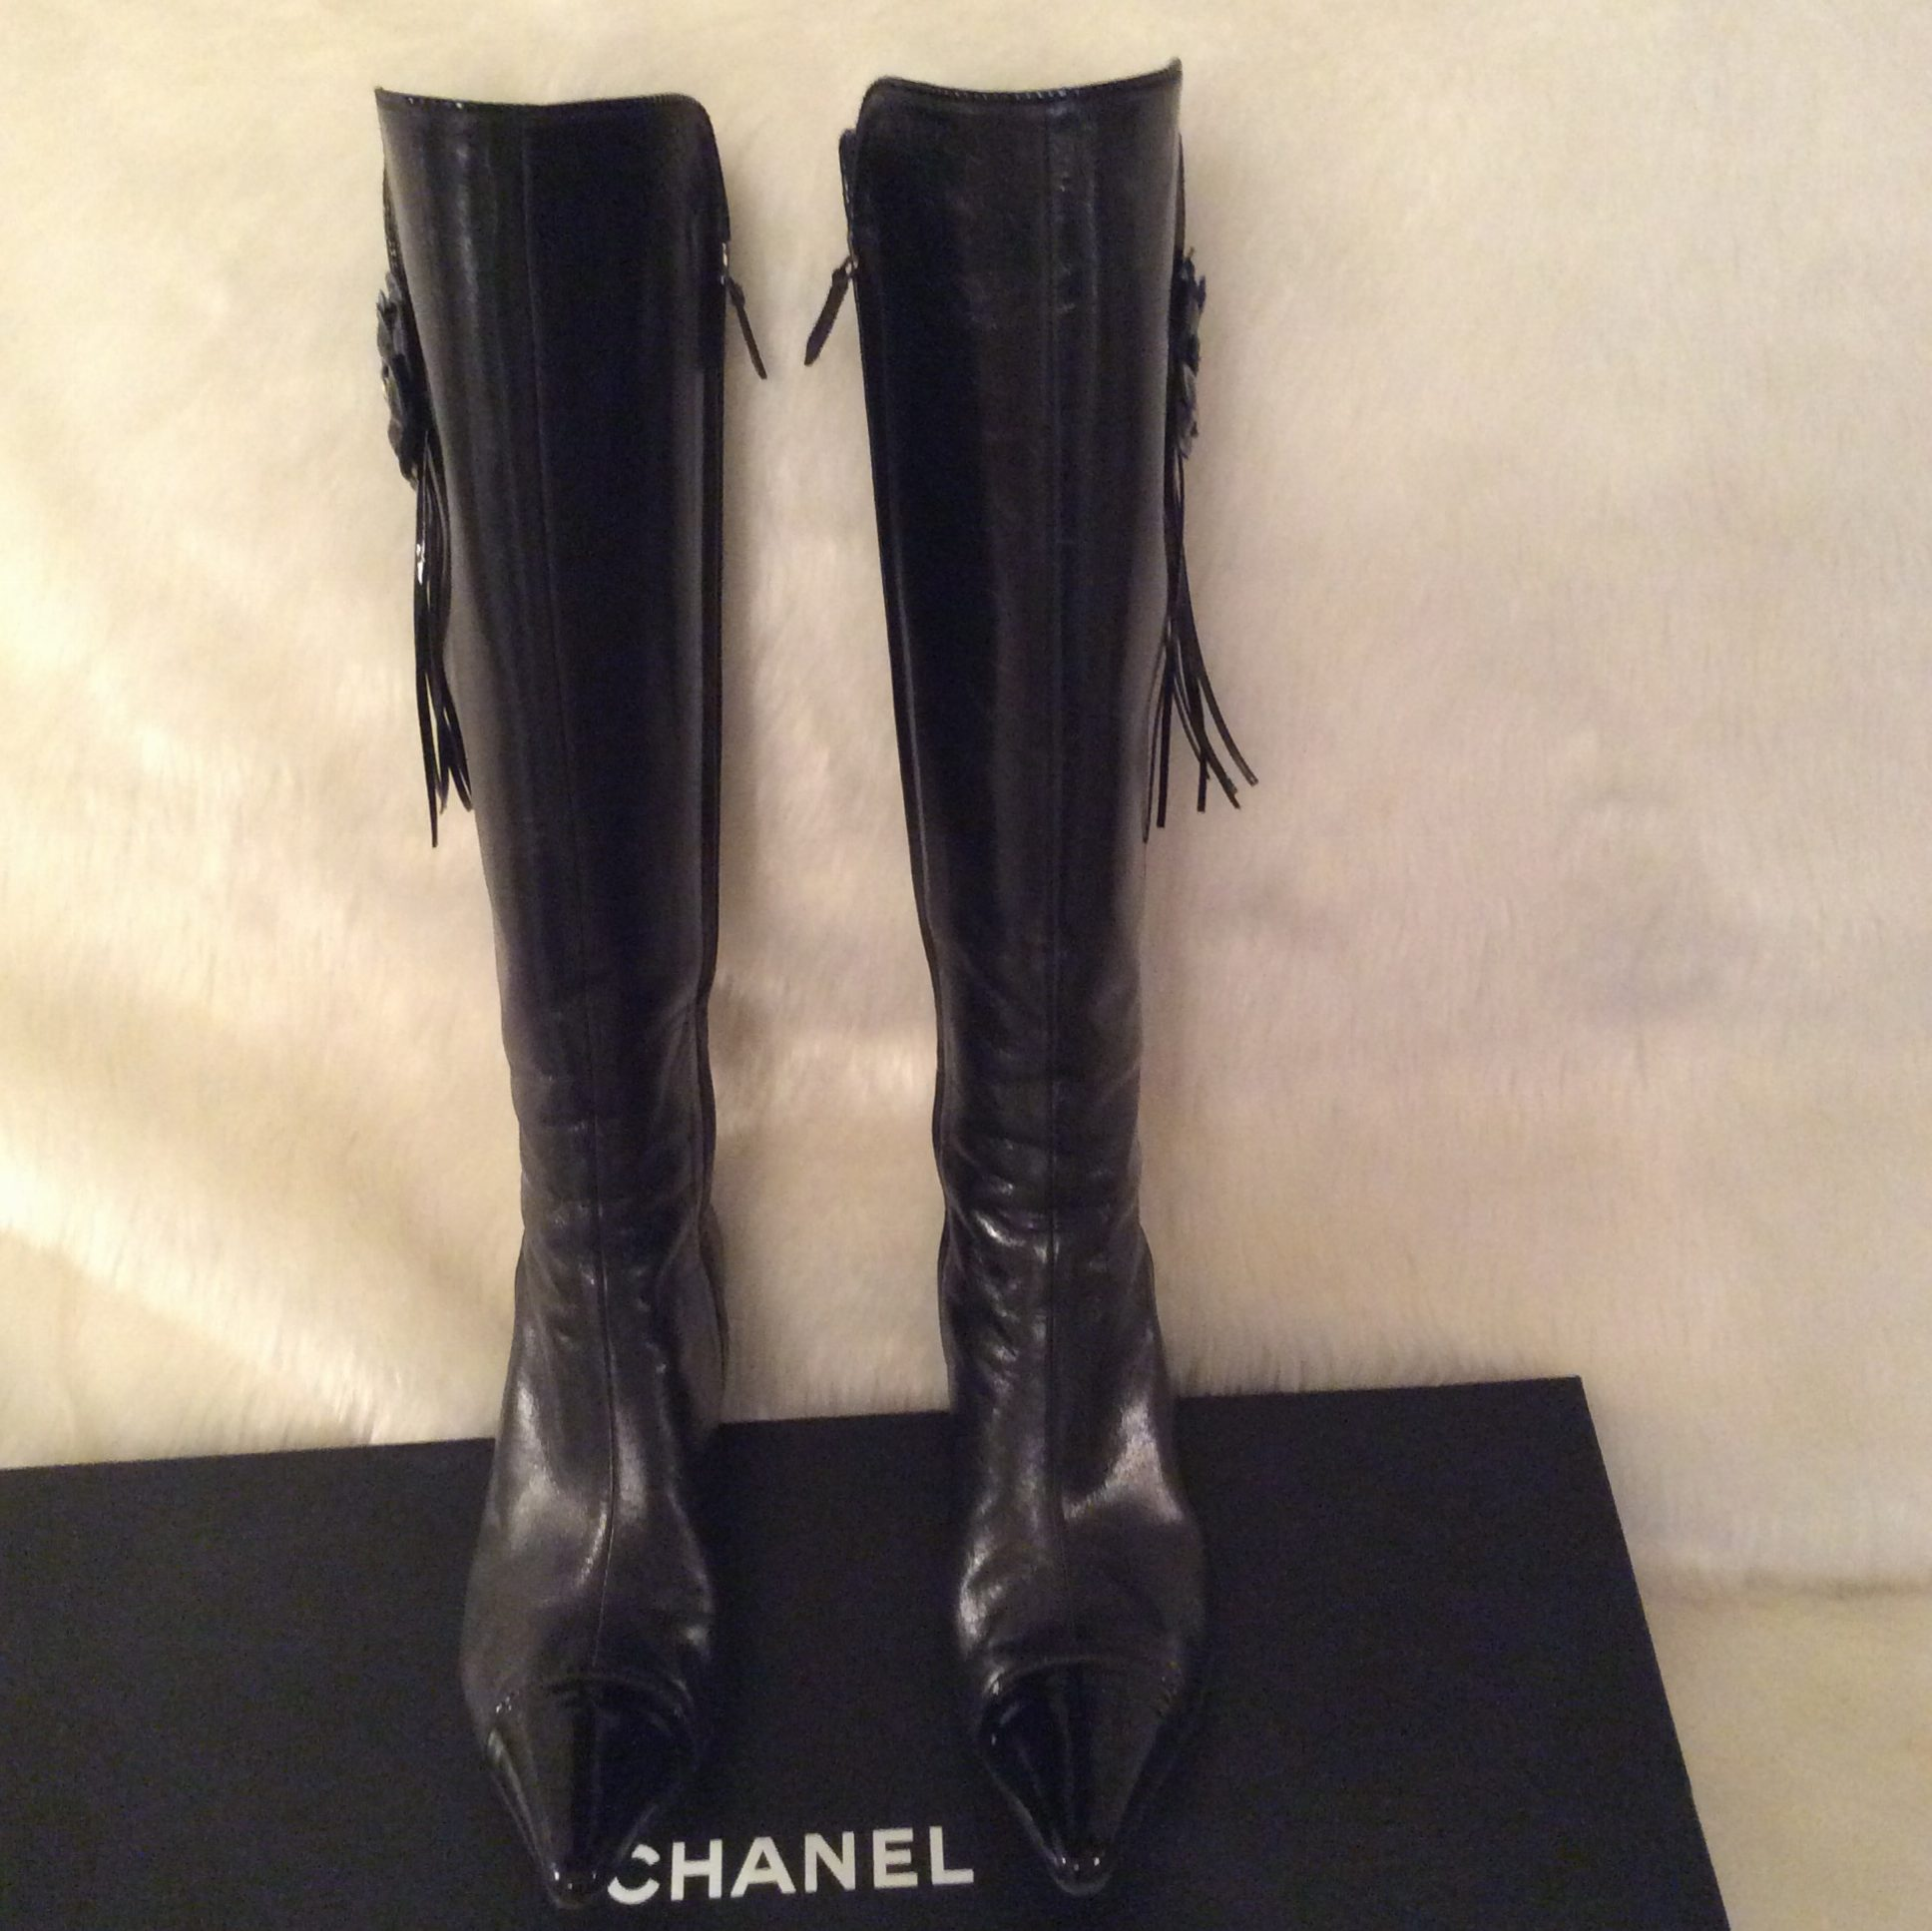 chanel knee high boots. chanel-authentic-vintage-black-leather-and-black-patent- chanel knee high boots 1